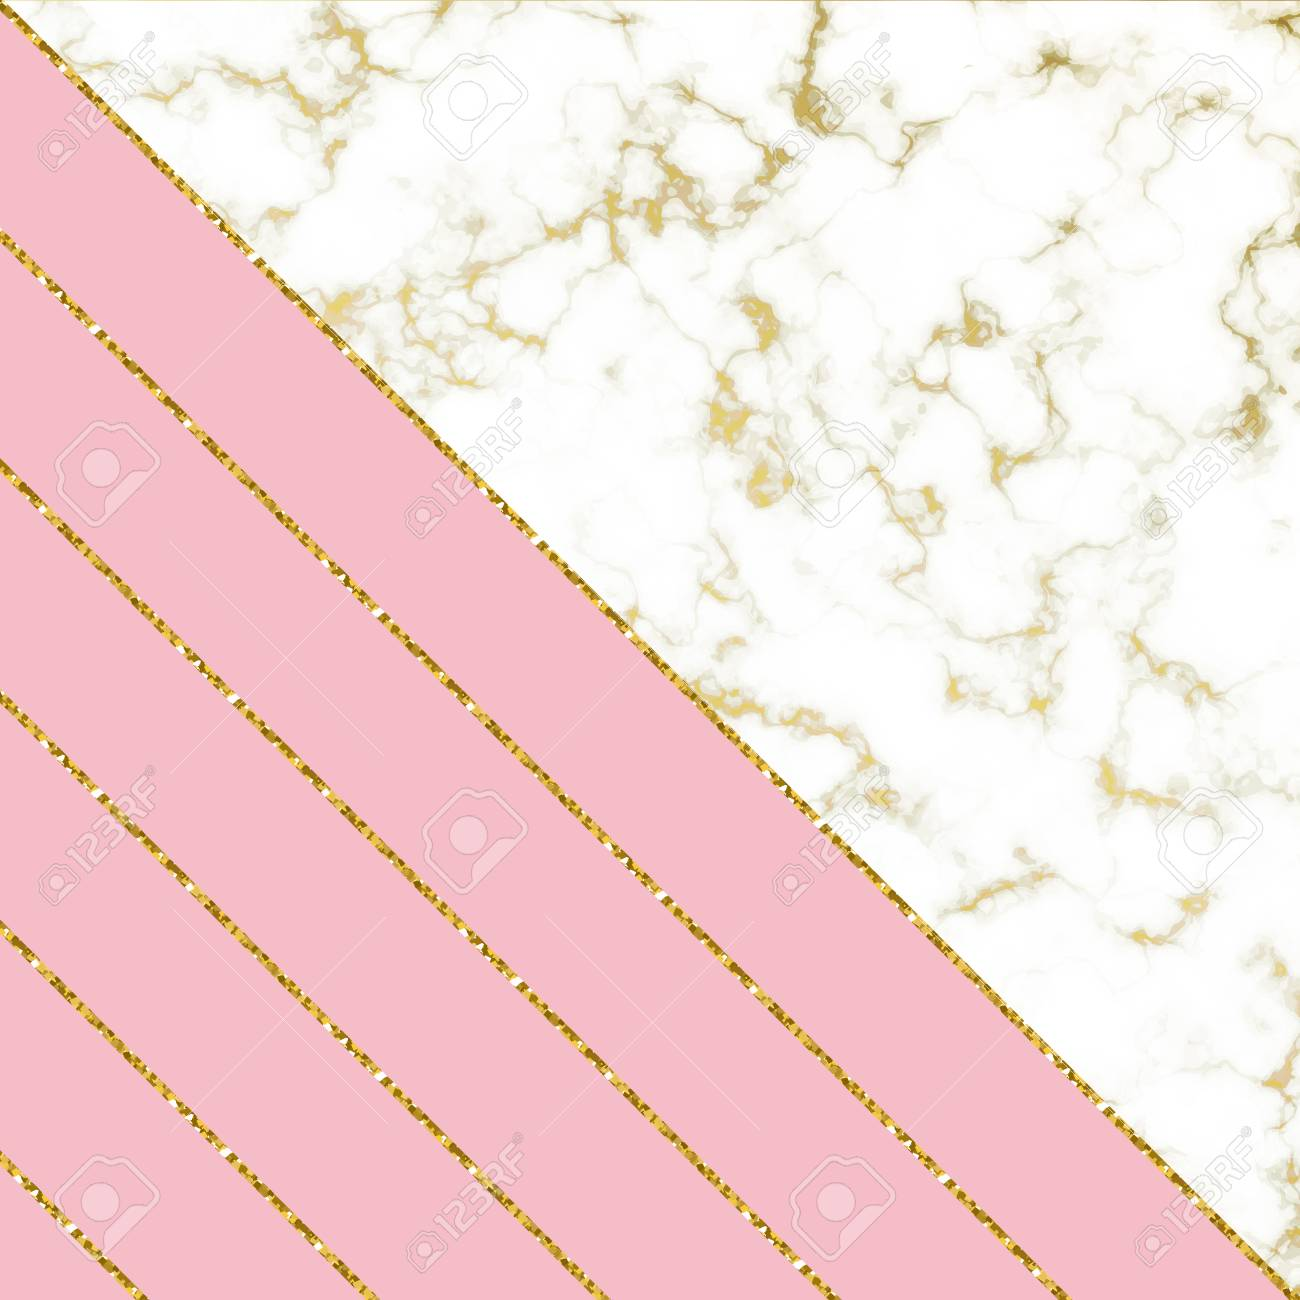 Modern Background With White Marble Texture And Pink And Gold Royalty Free Cliparts Vectors And Stock Illustration Image 93657849